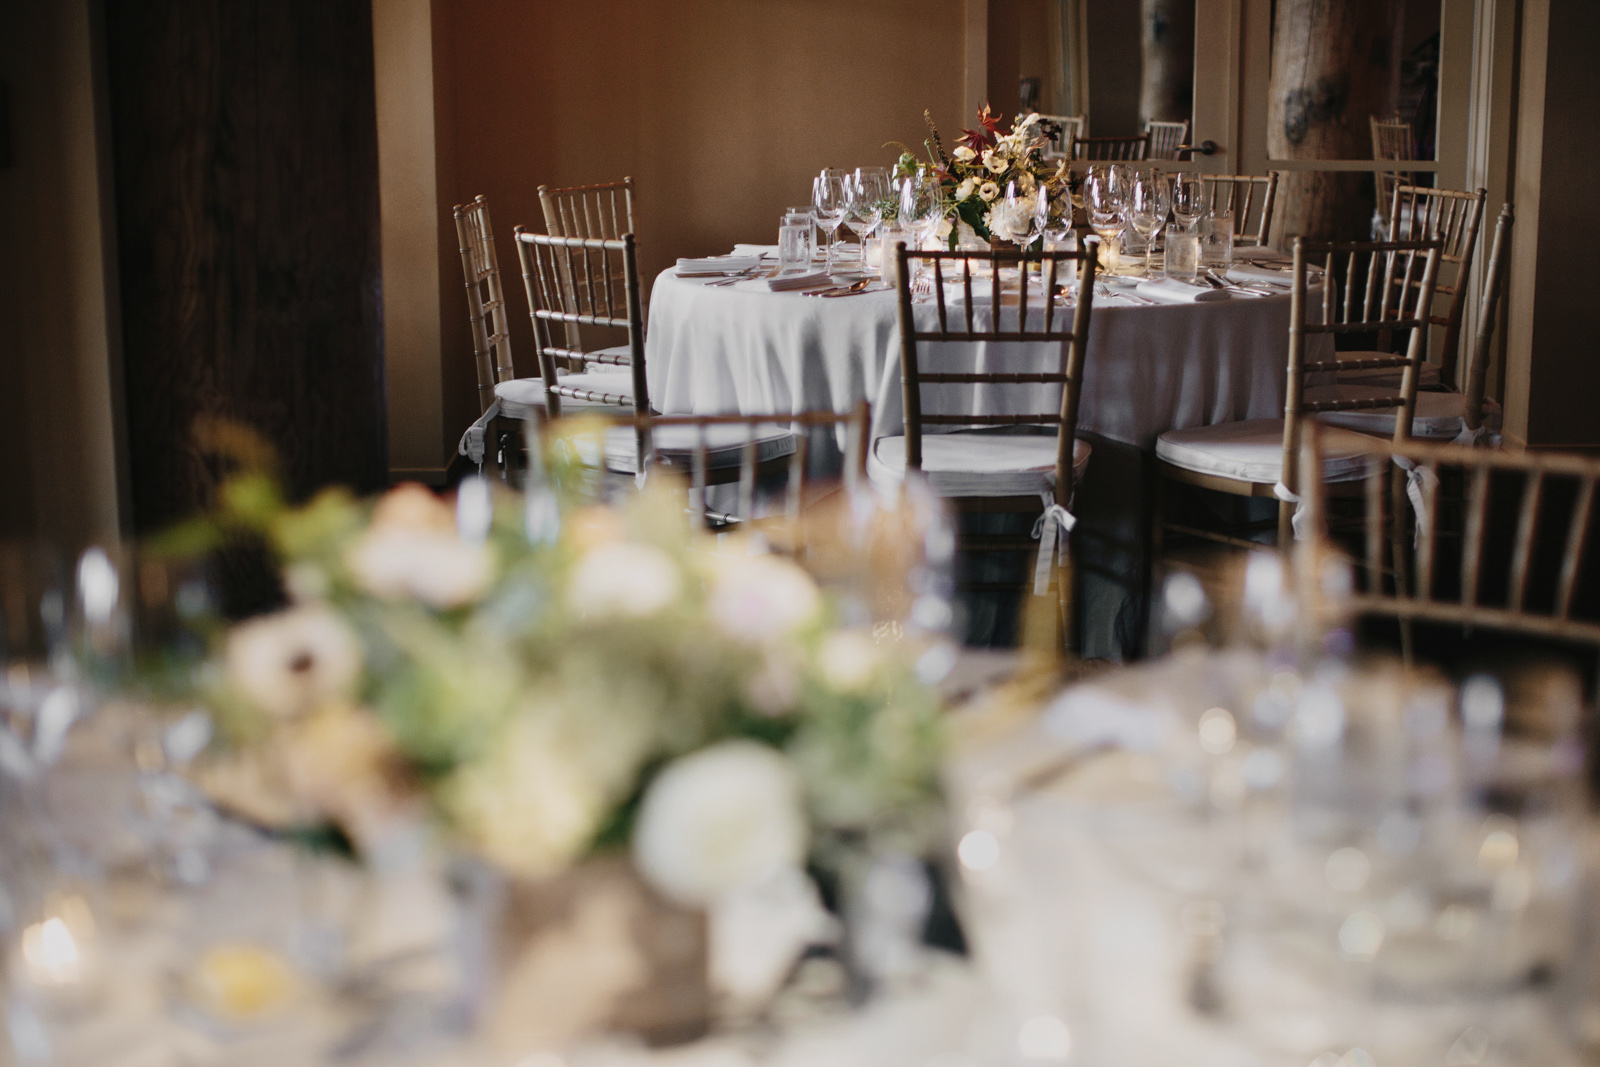 San Francisco - Napa Valley Wedding Photographer - For the Love of It-016.jpg